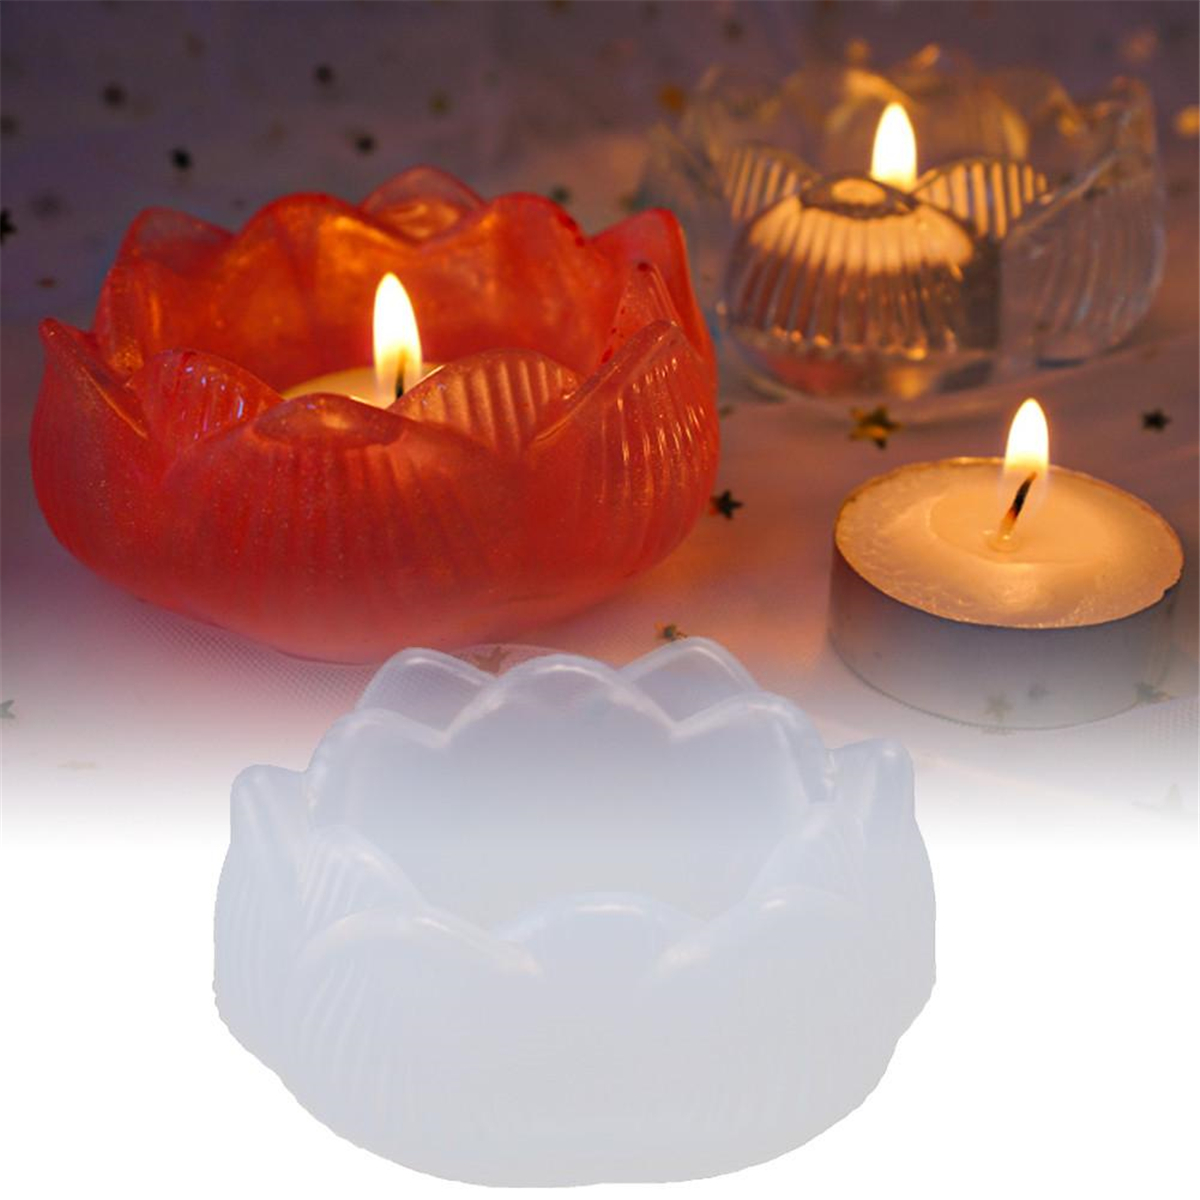 Silicone Mold Lotus Candle Holder Epoxy Resin Mould Diy Jewelry Making Crafts 884885371208 Ebay